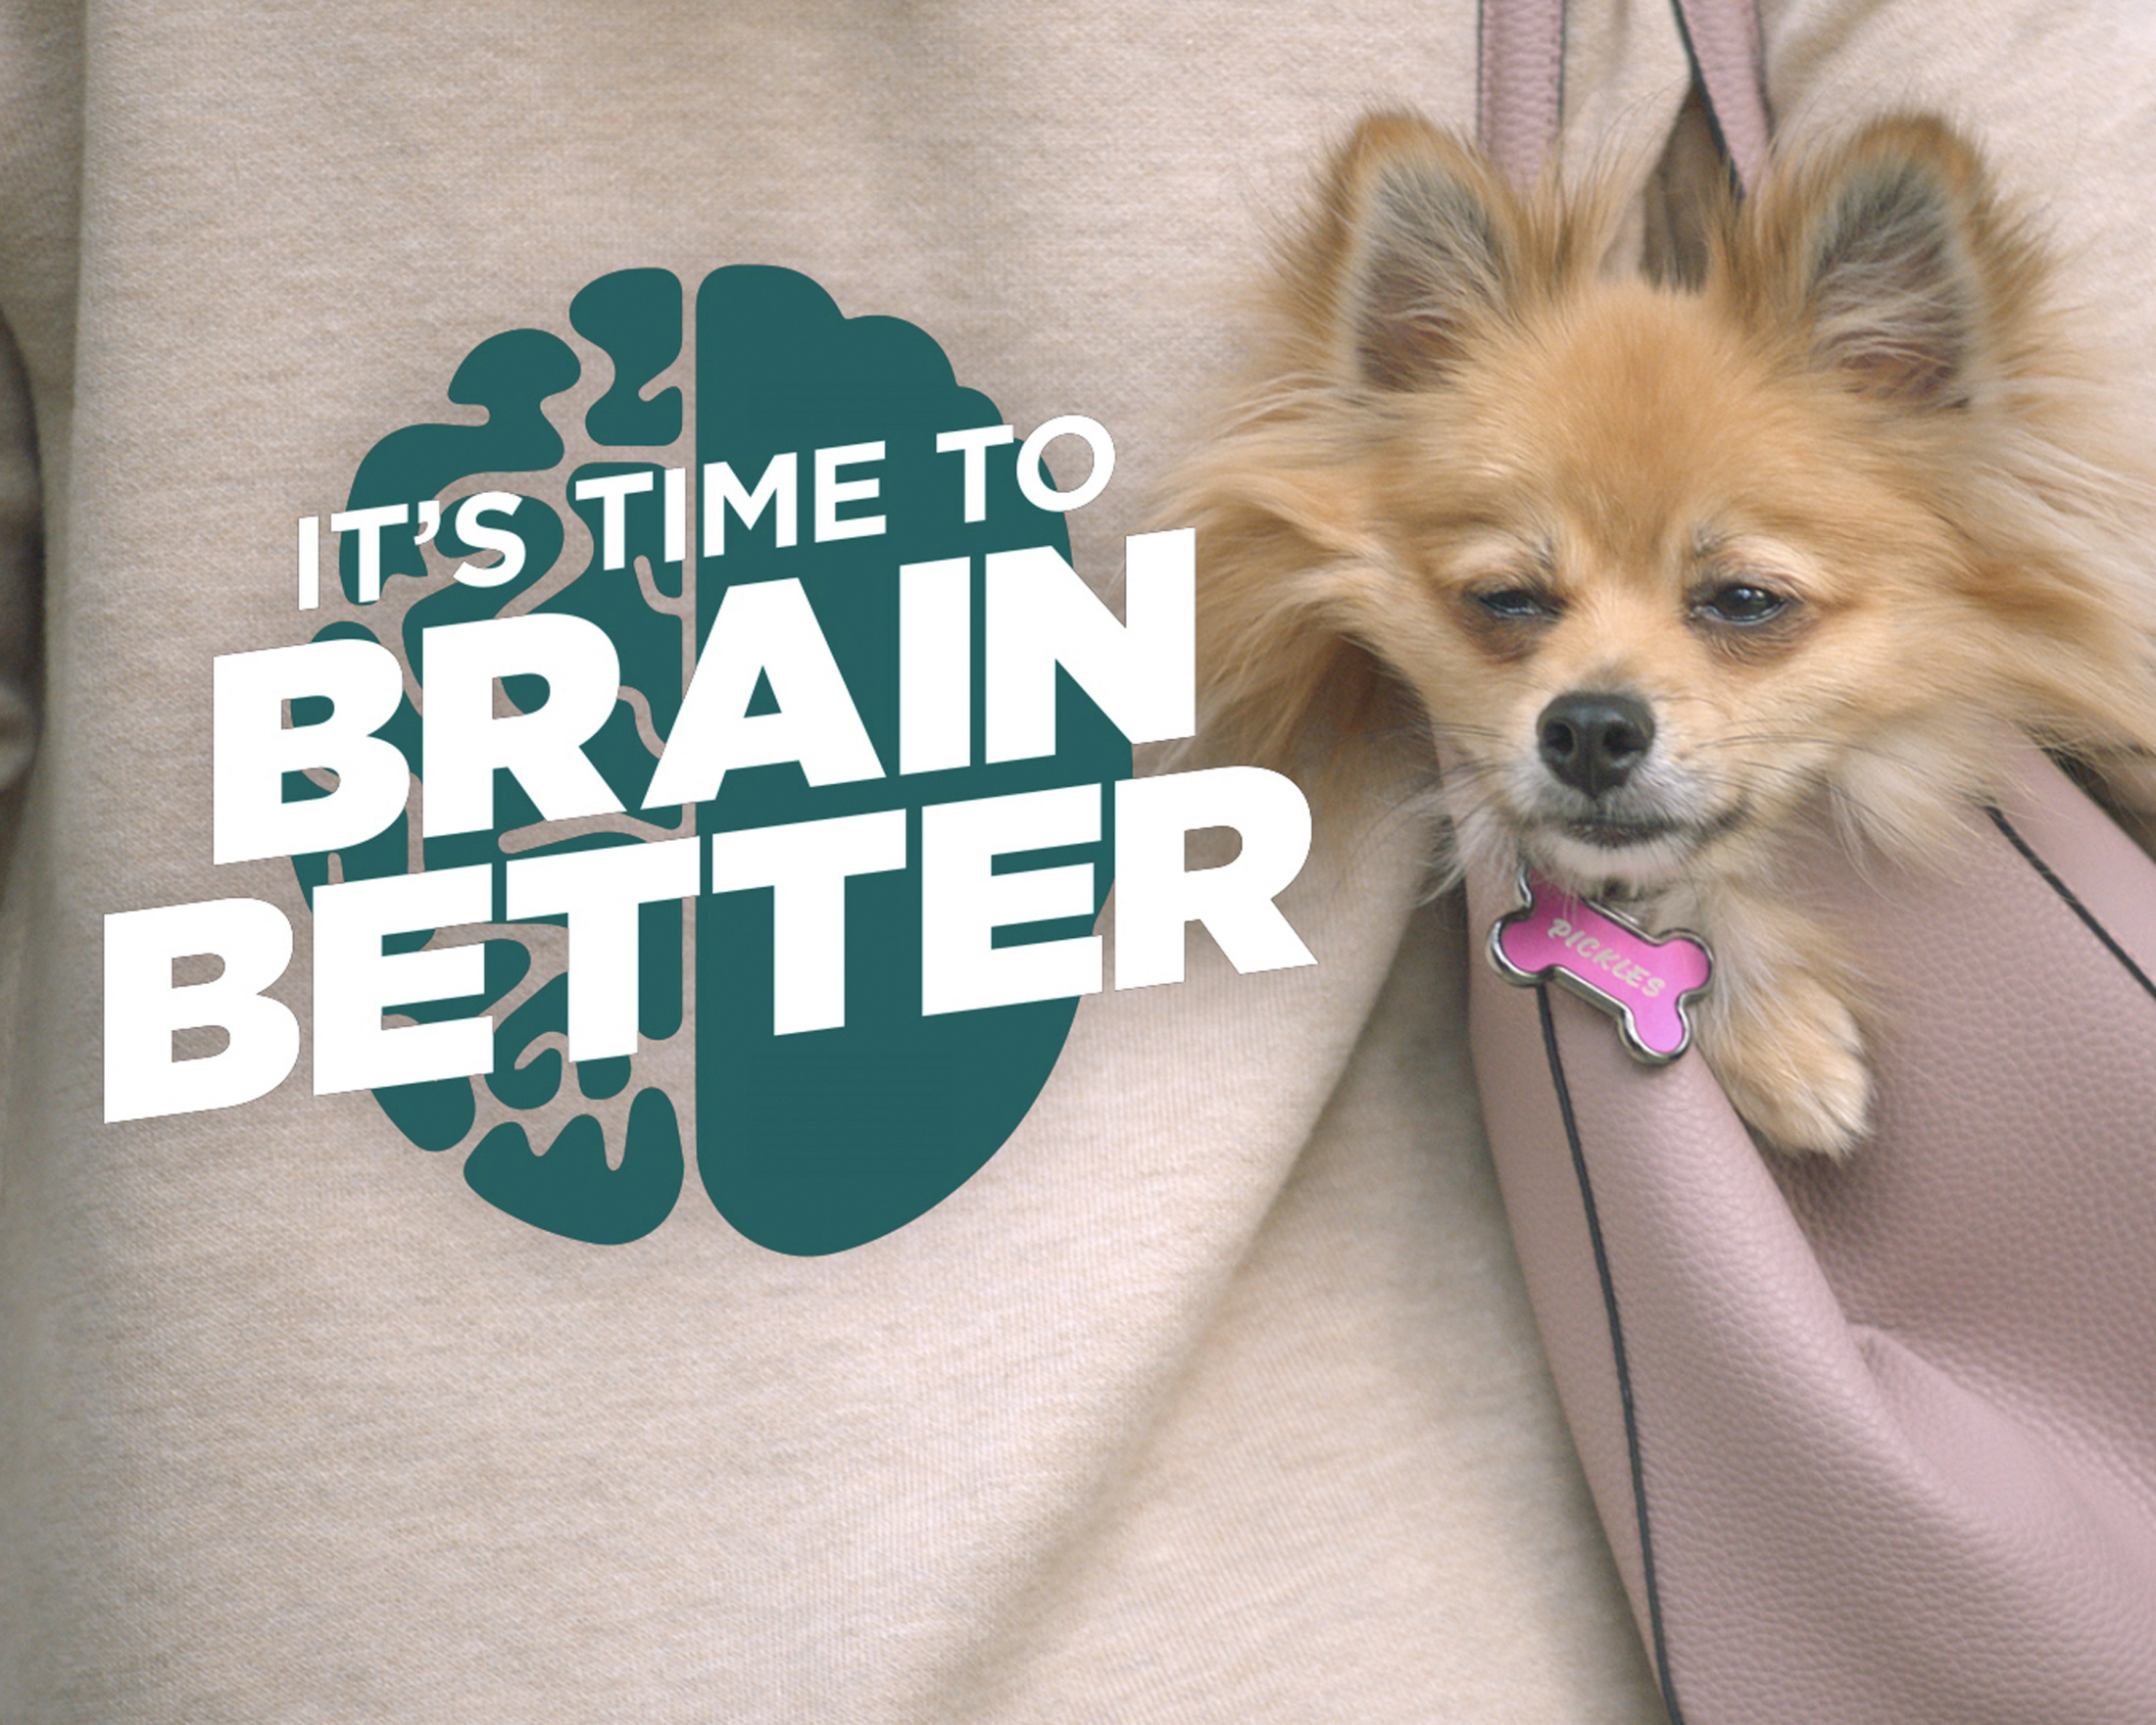 Thumbnail for Neuriva - It's Time To Brain Better (Pickles)